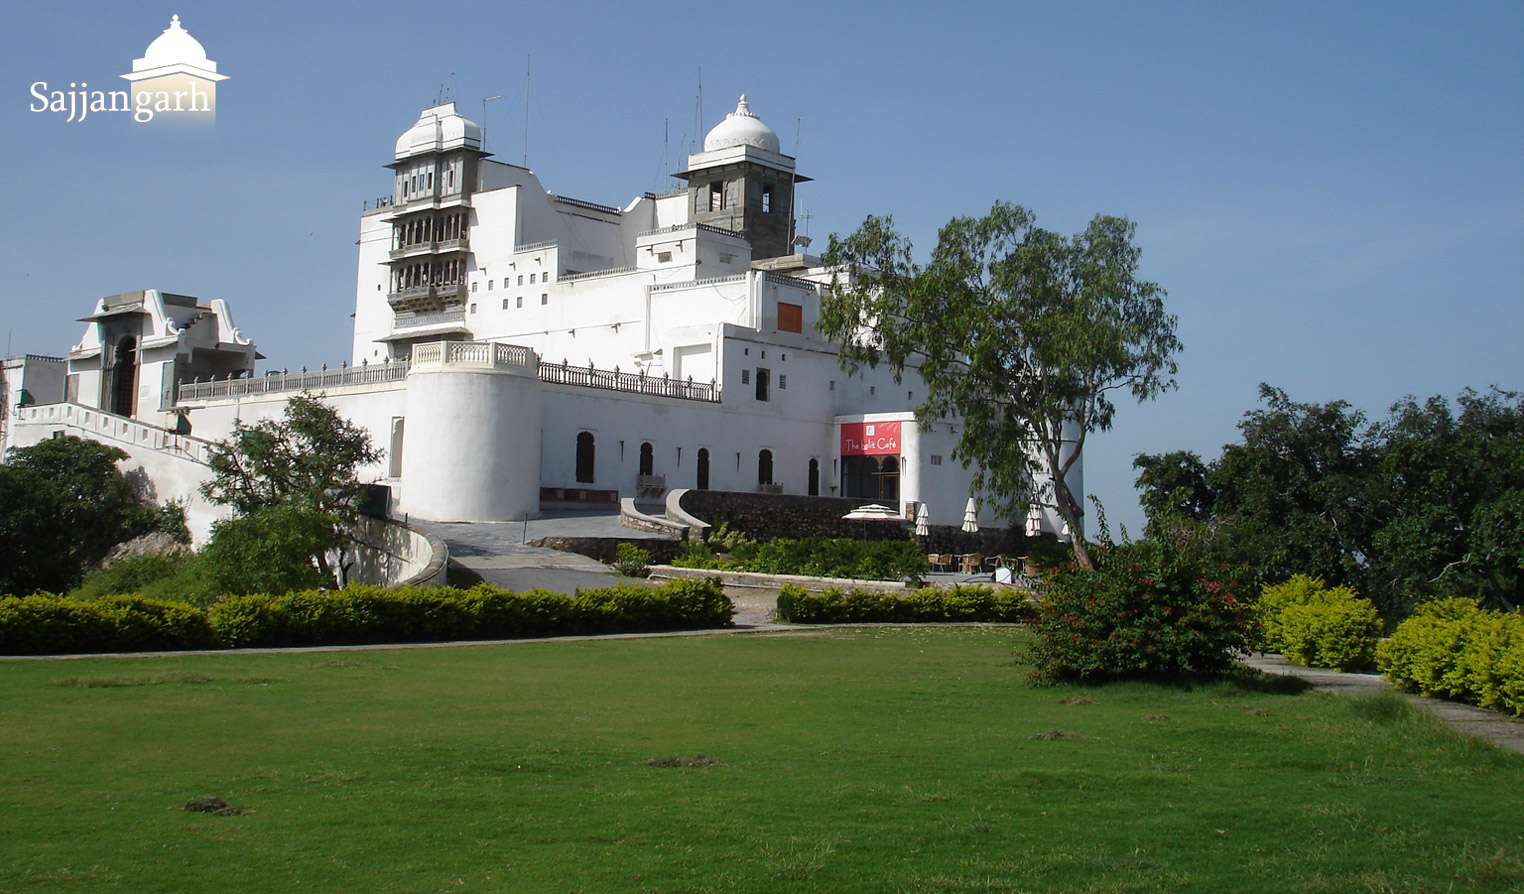 Sajjangarh Fort Udaipur - The Monsoon Palace